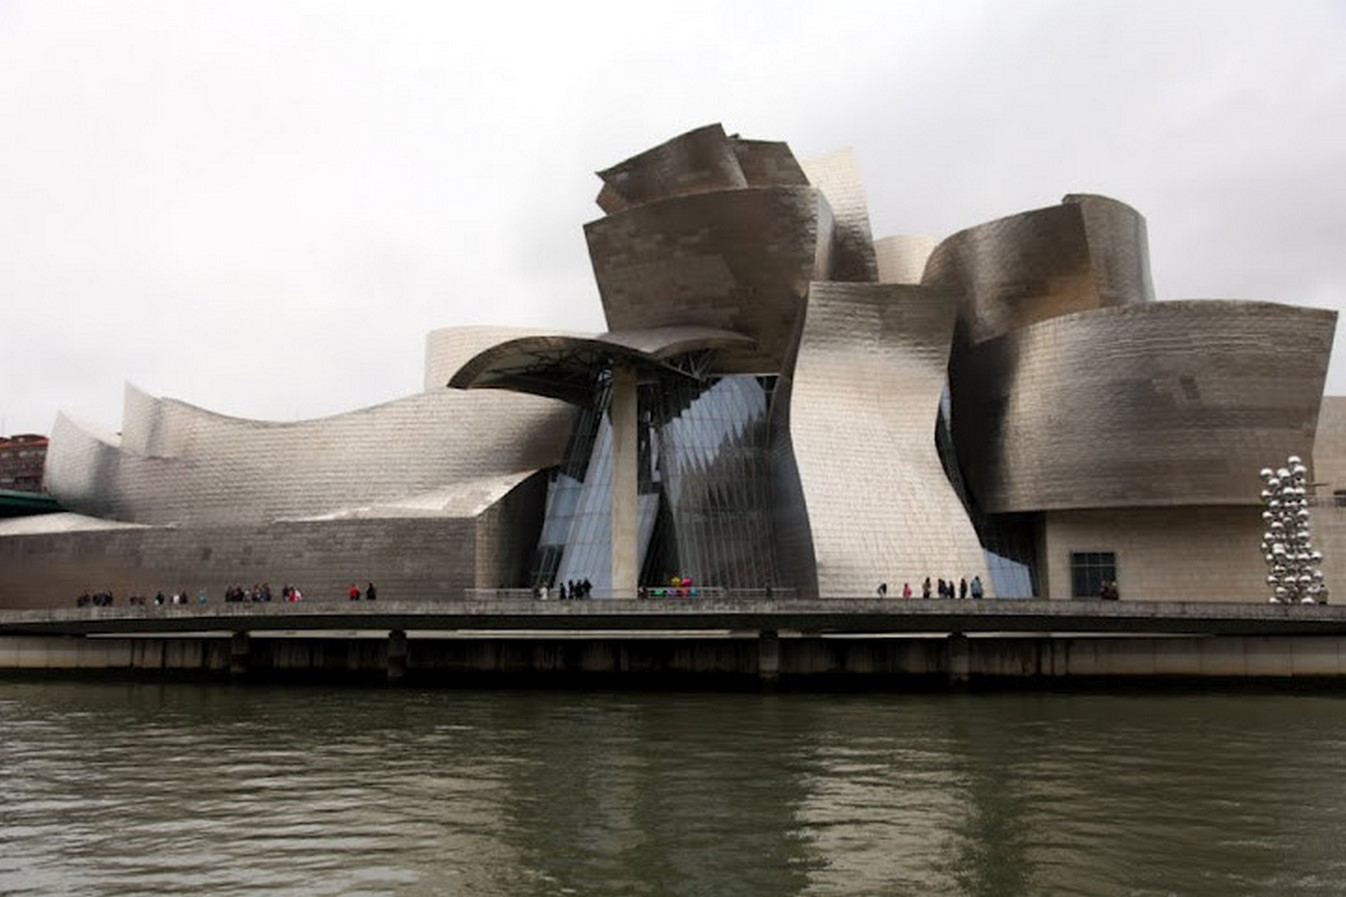 FRANK GEHRY/GEHRY PARTNERS - Sheet1